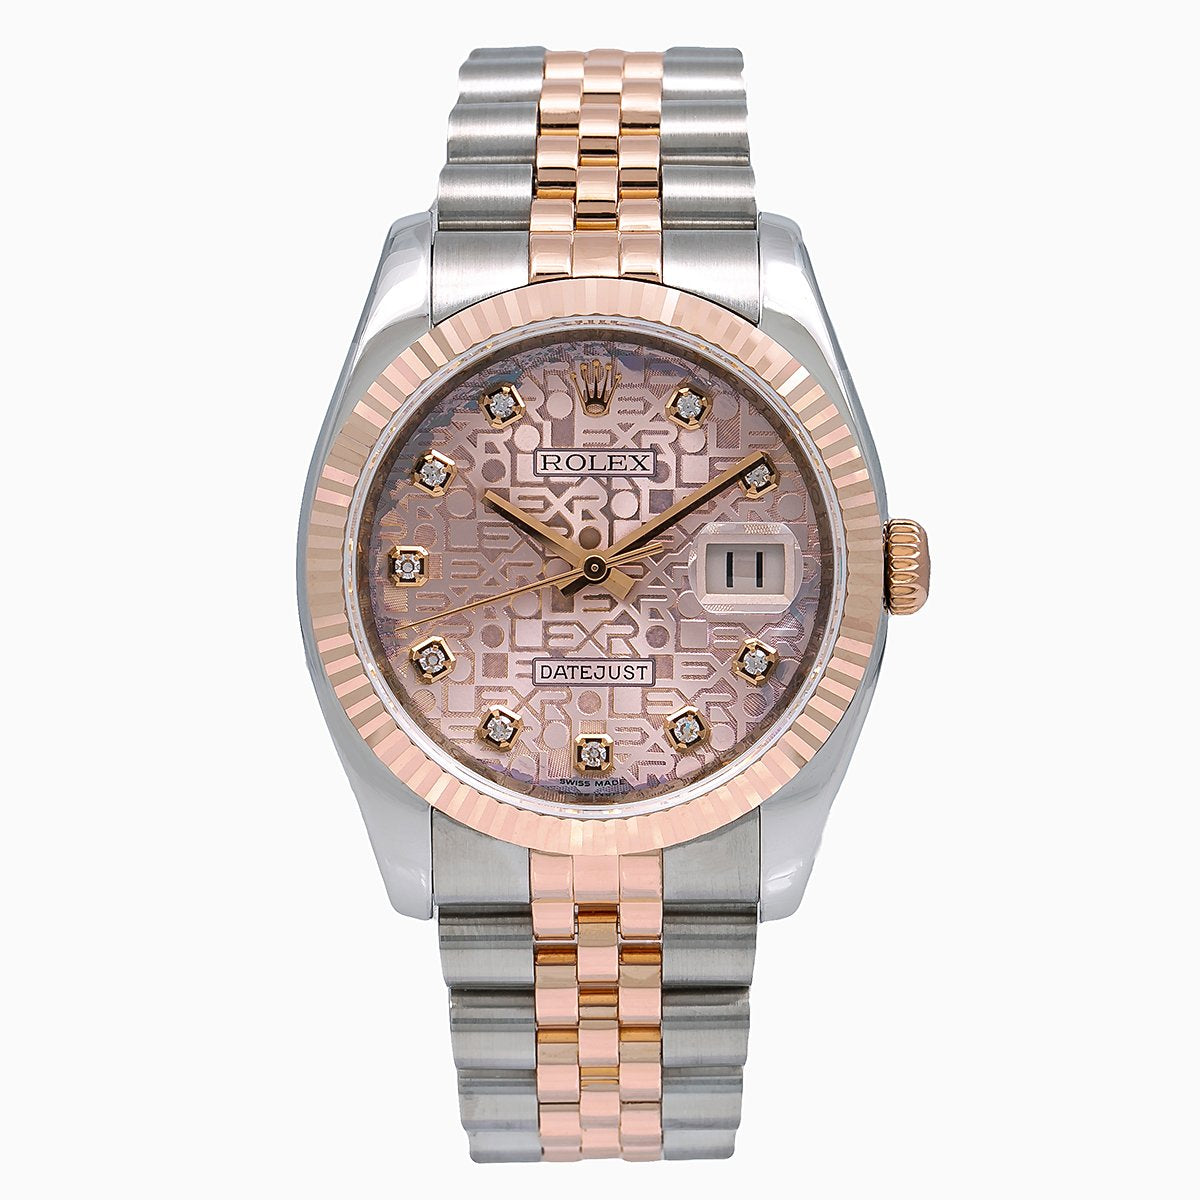 Rolex Datejust 116231 36MM Factory Pink Dial with Two Tone Jubilee Bracelet